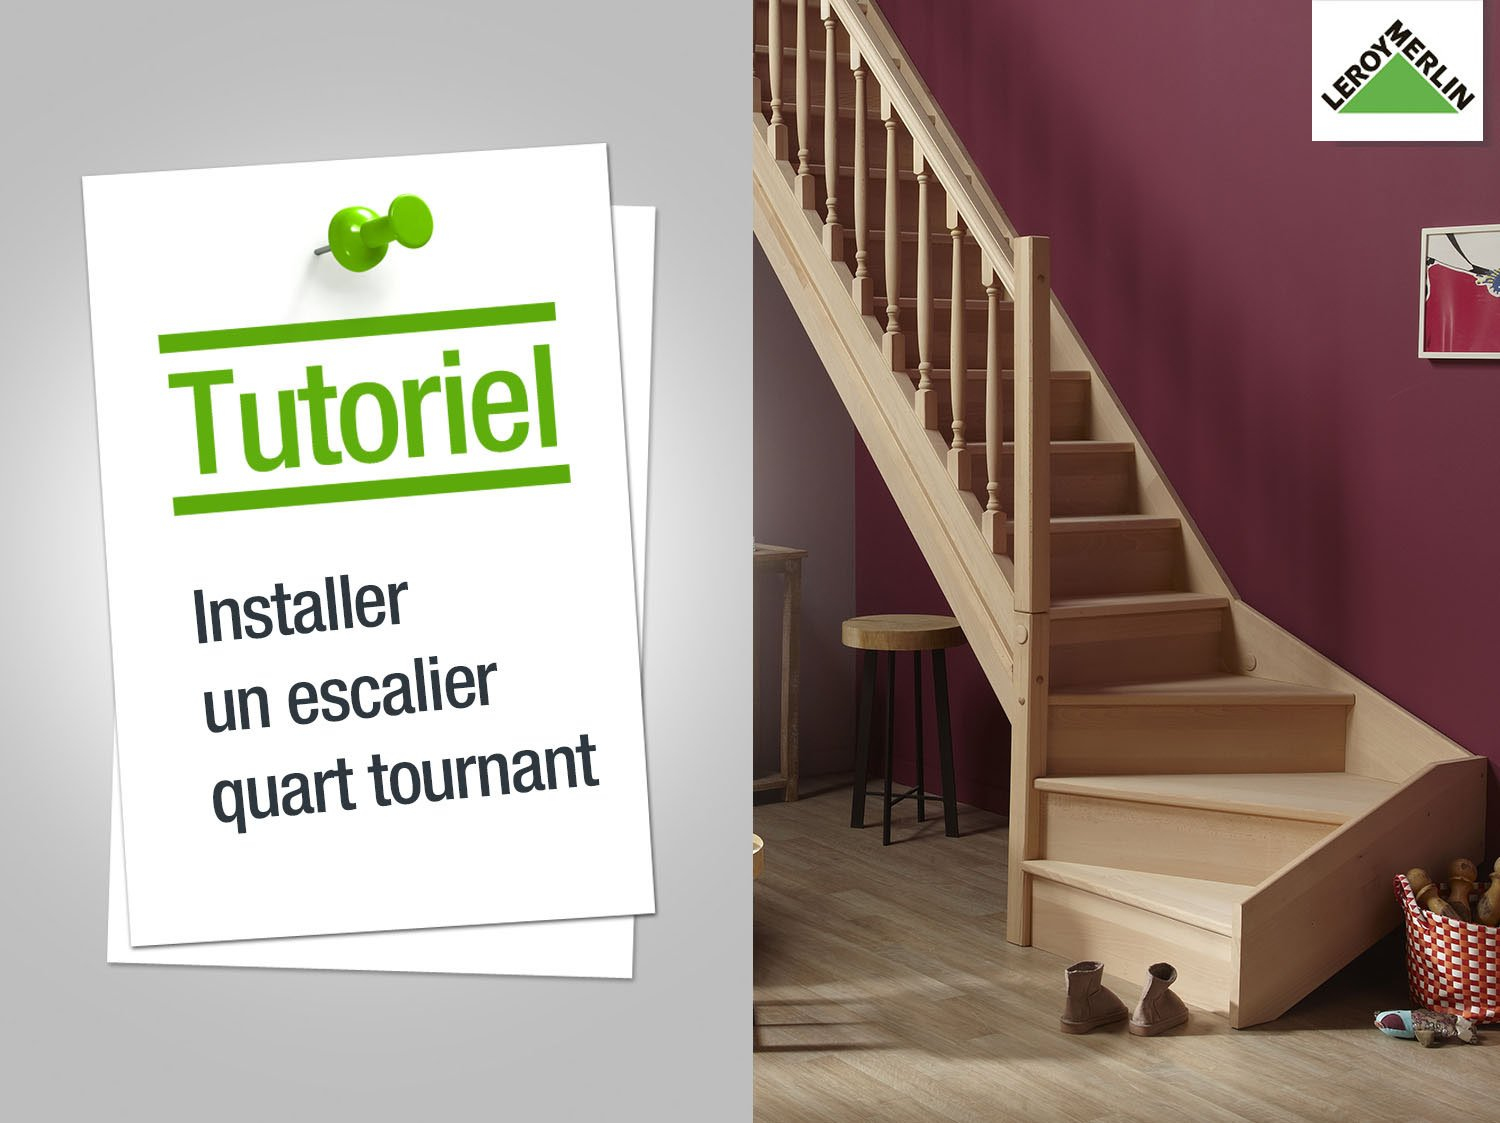 installer un escalier quart tournant